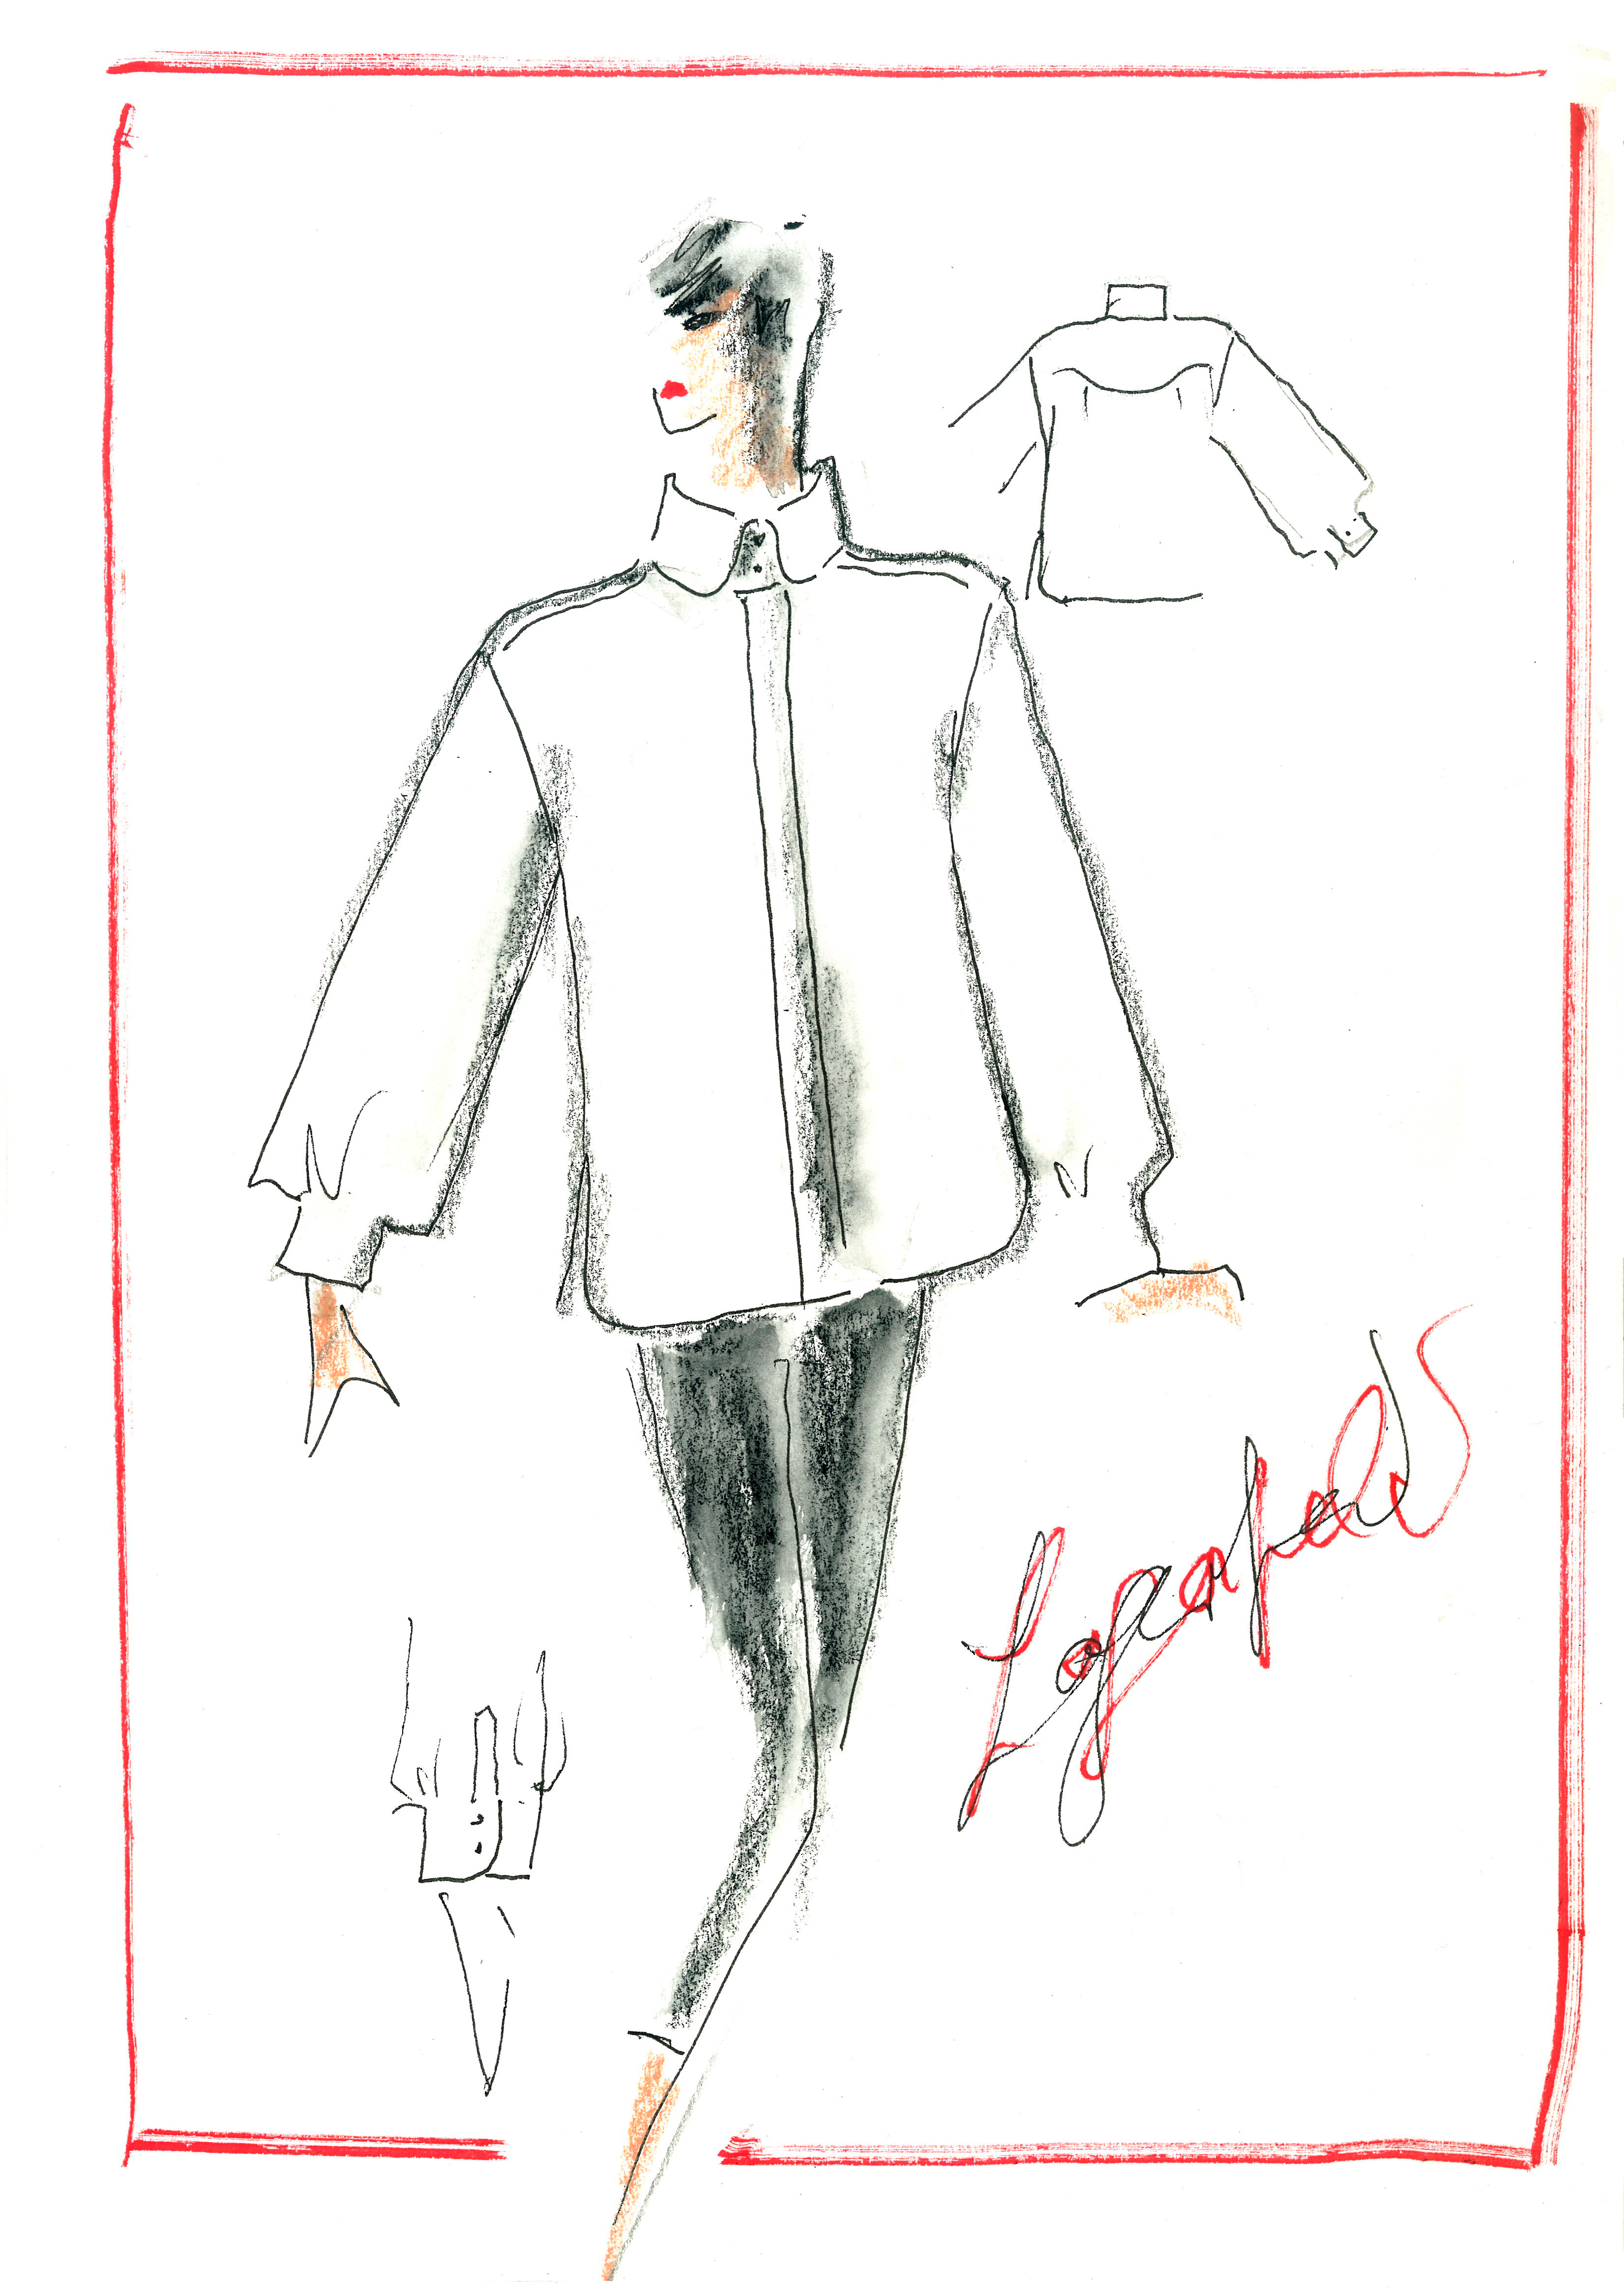 Karl Lagerfeld's original sketch of the white shirt that will be used for the tribute